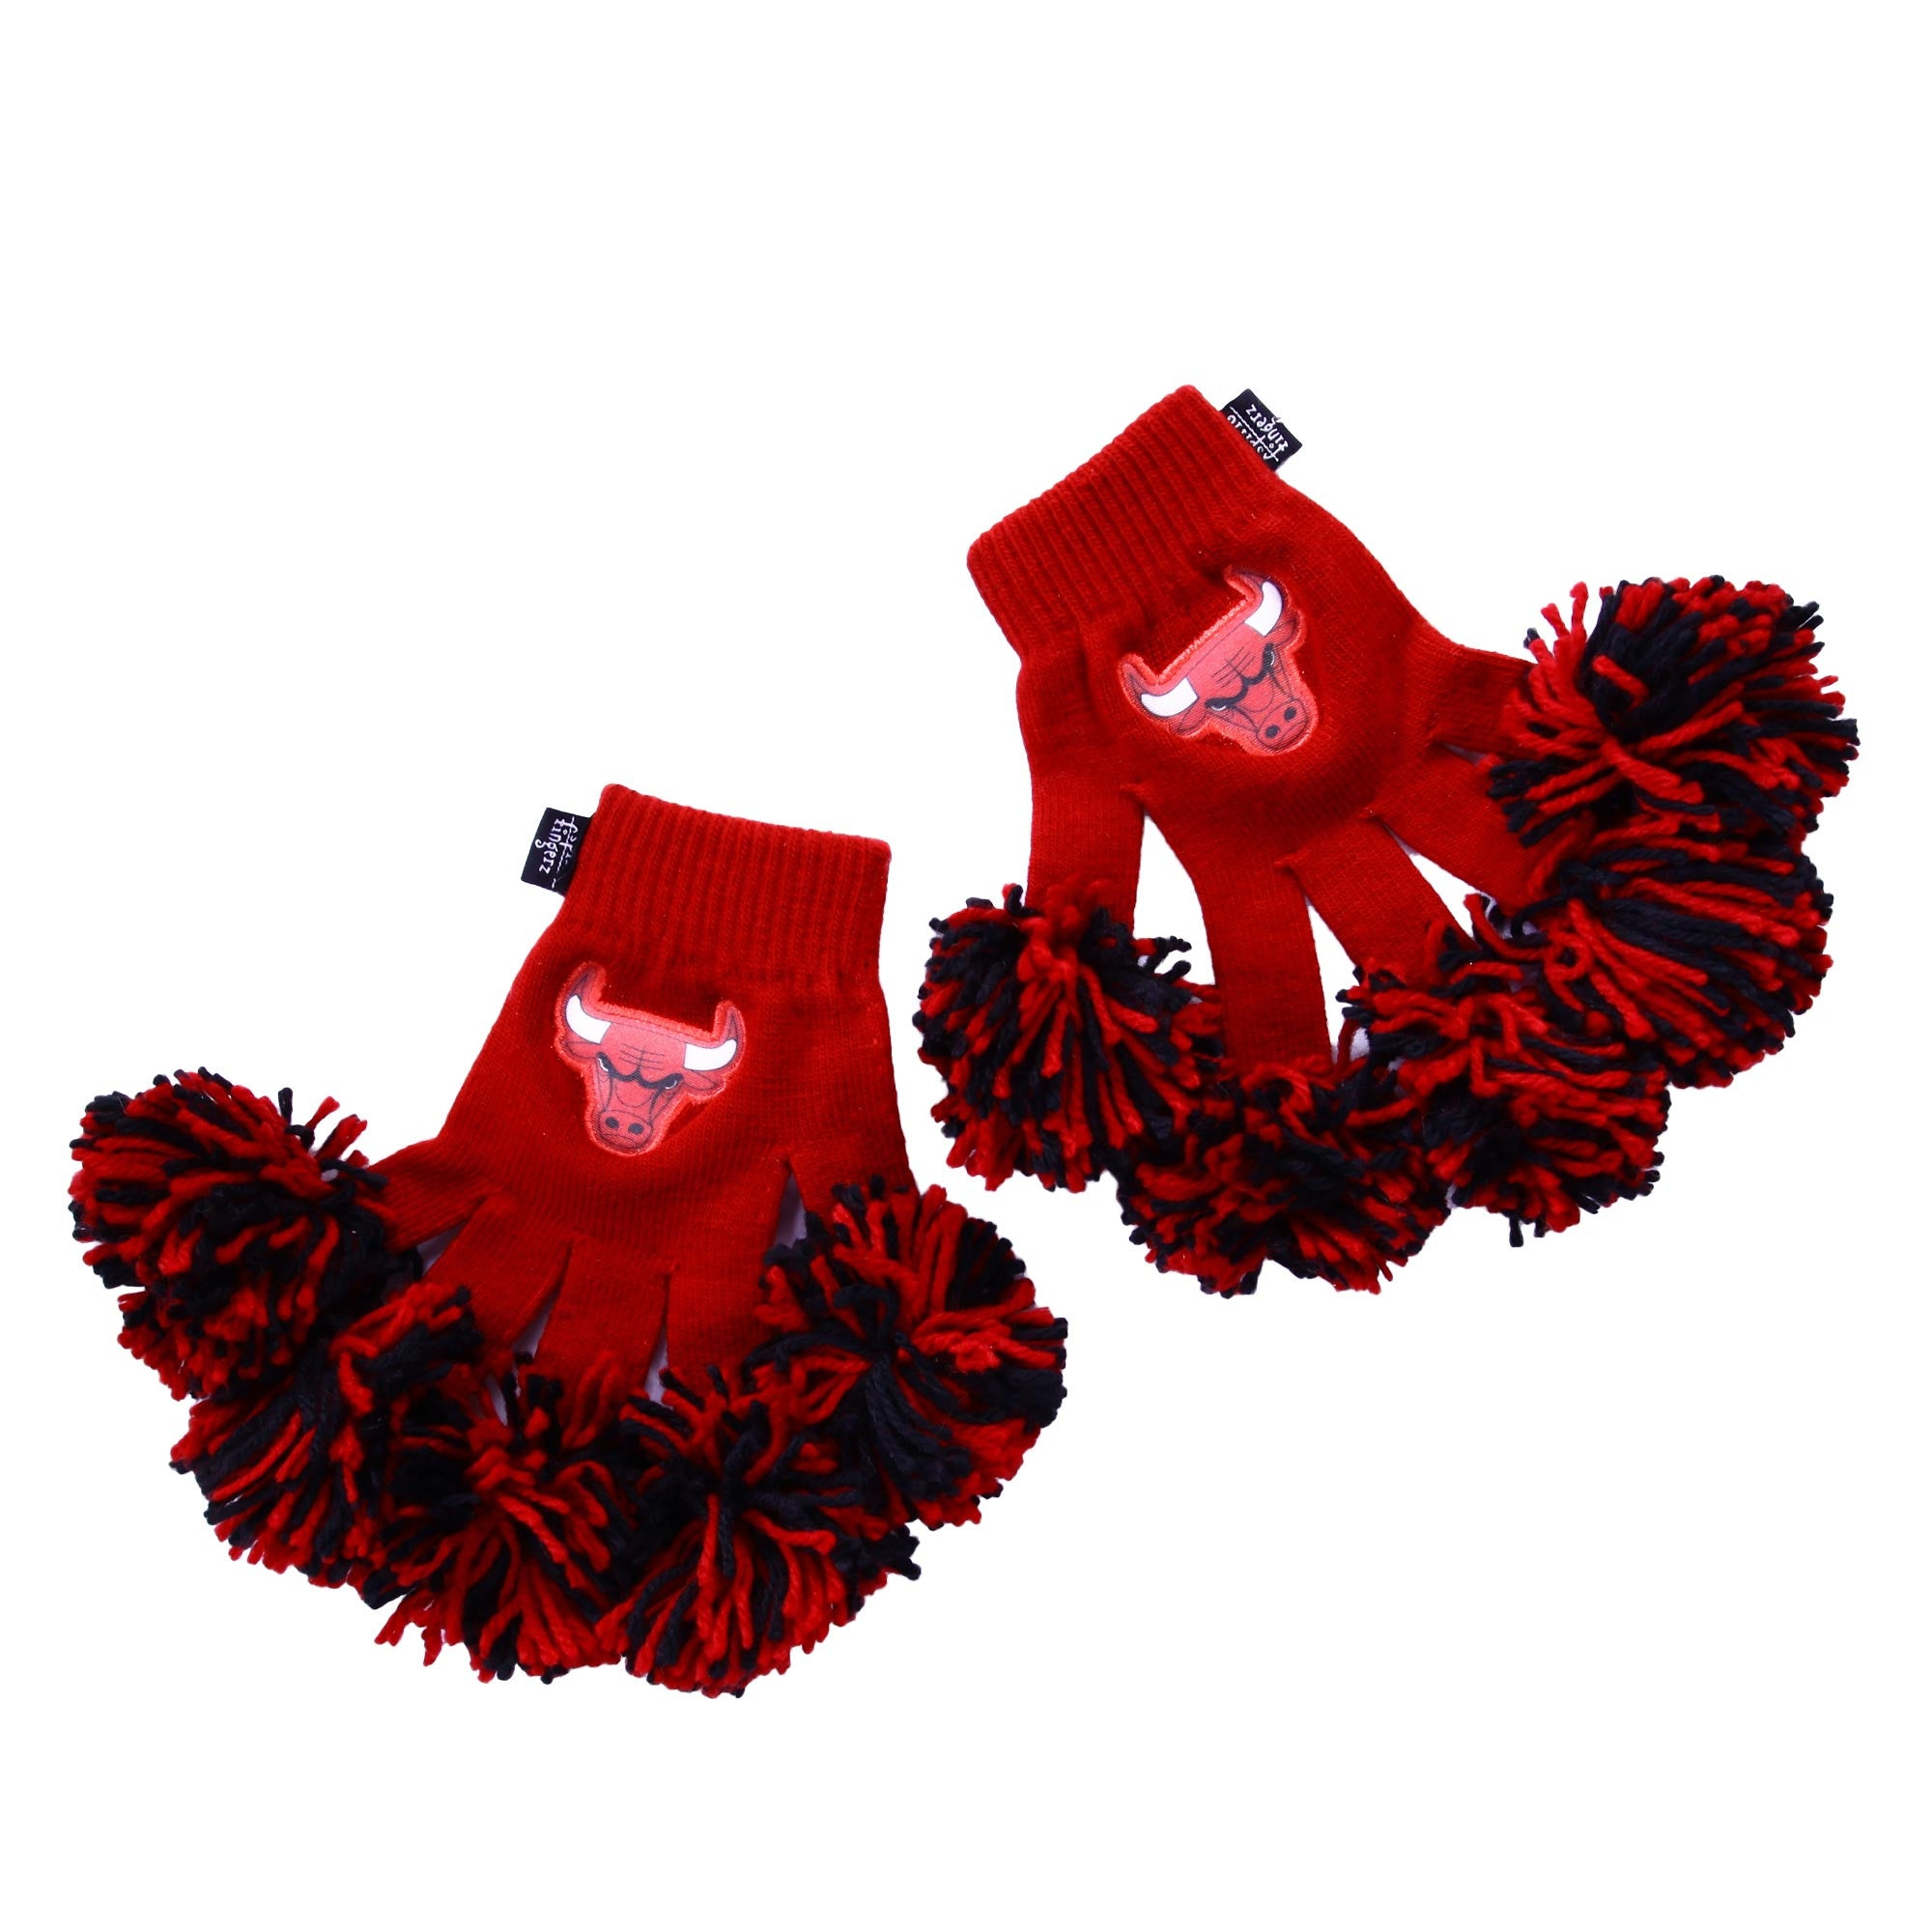 Chicago Bulls NBA Spirit Fingerz Cheerleading Pom-Pom Gloves